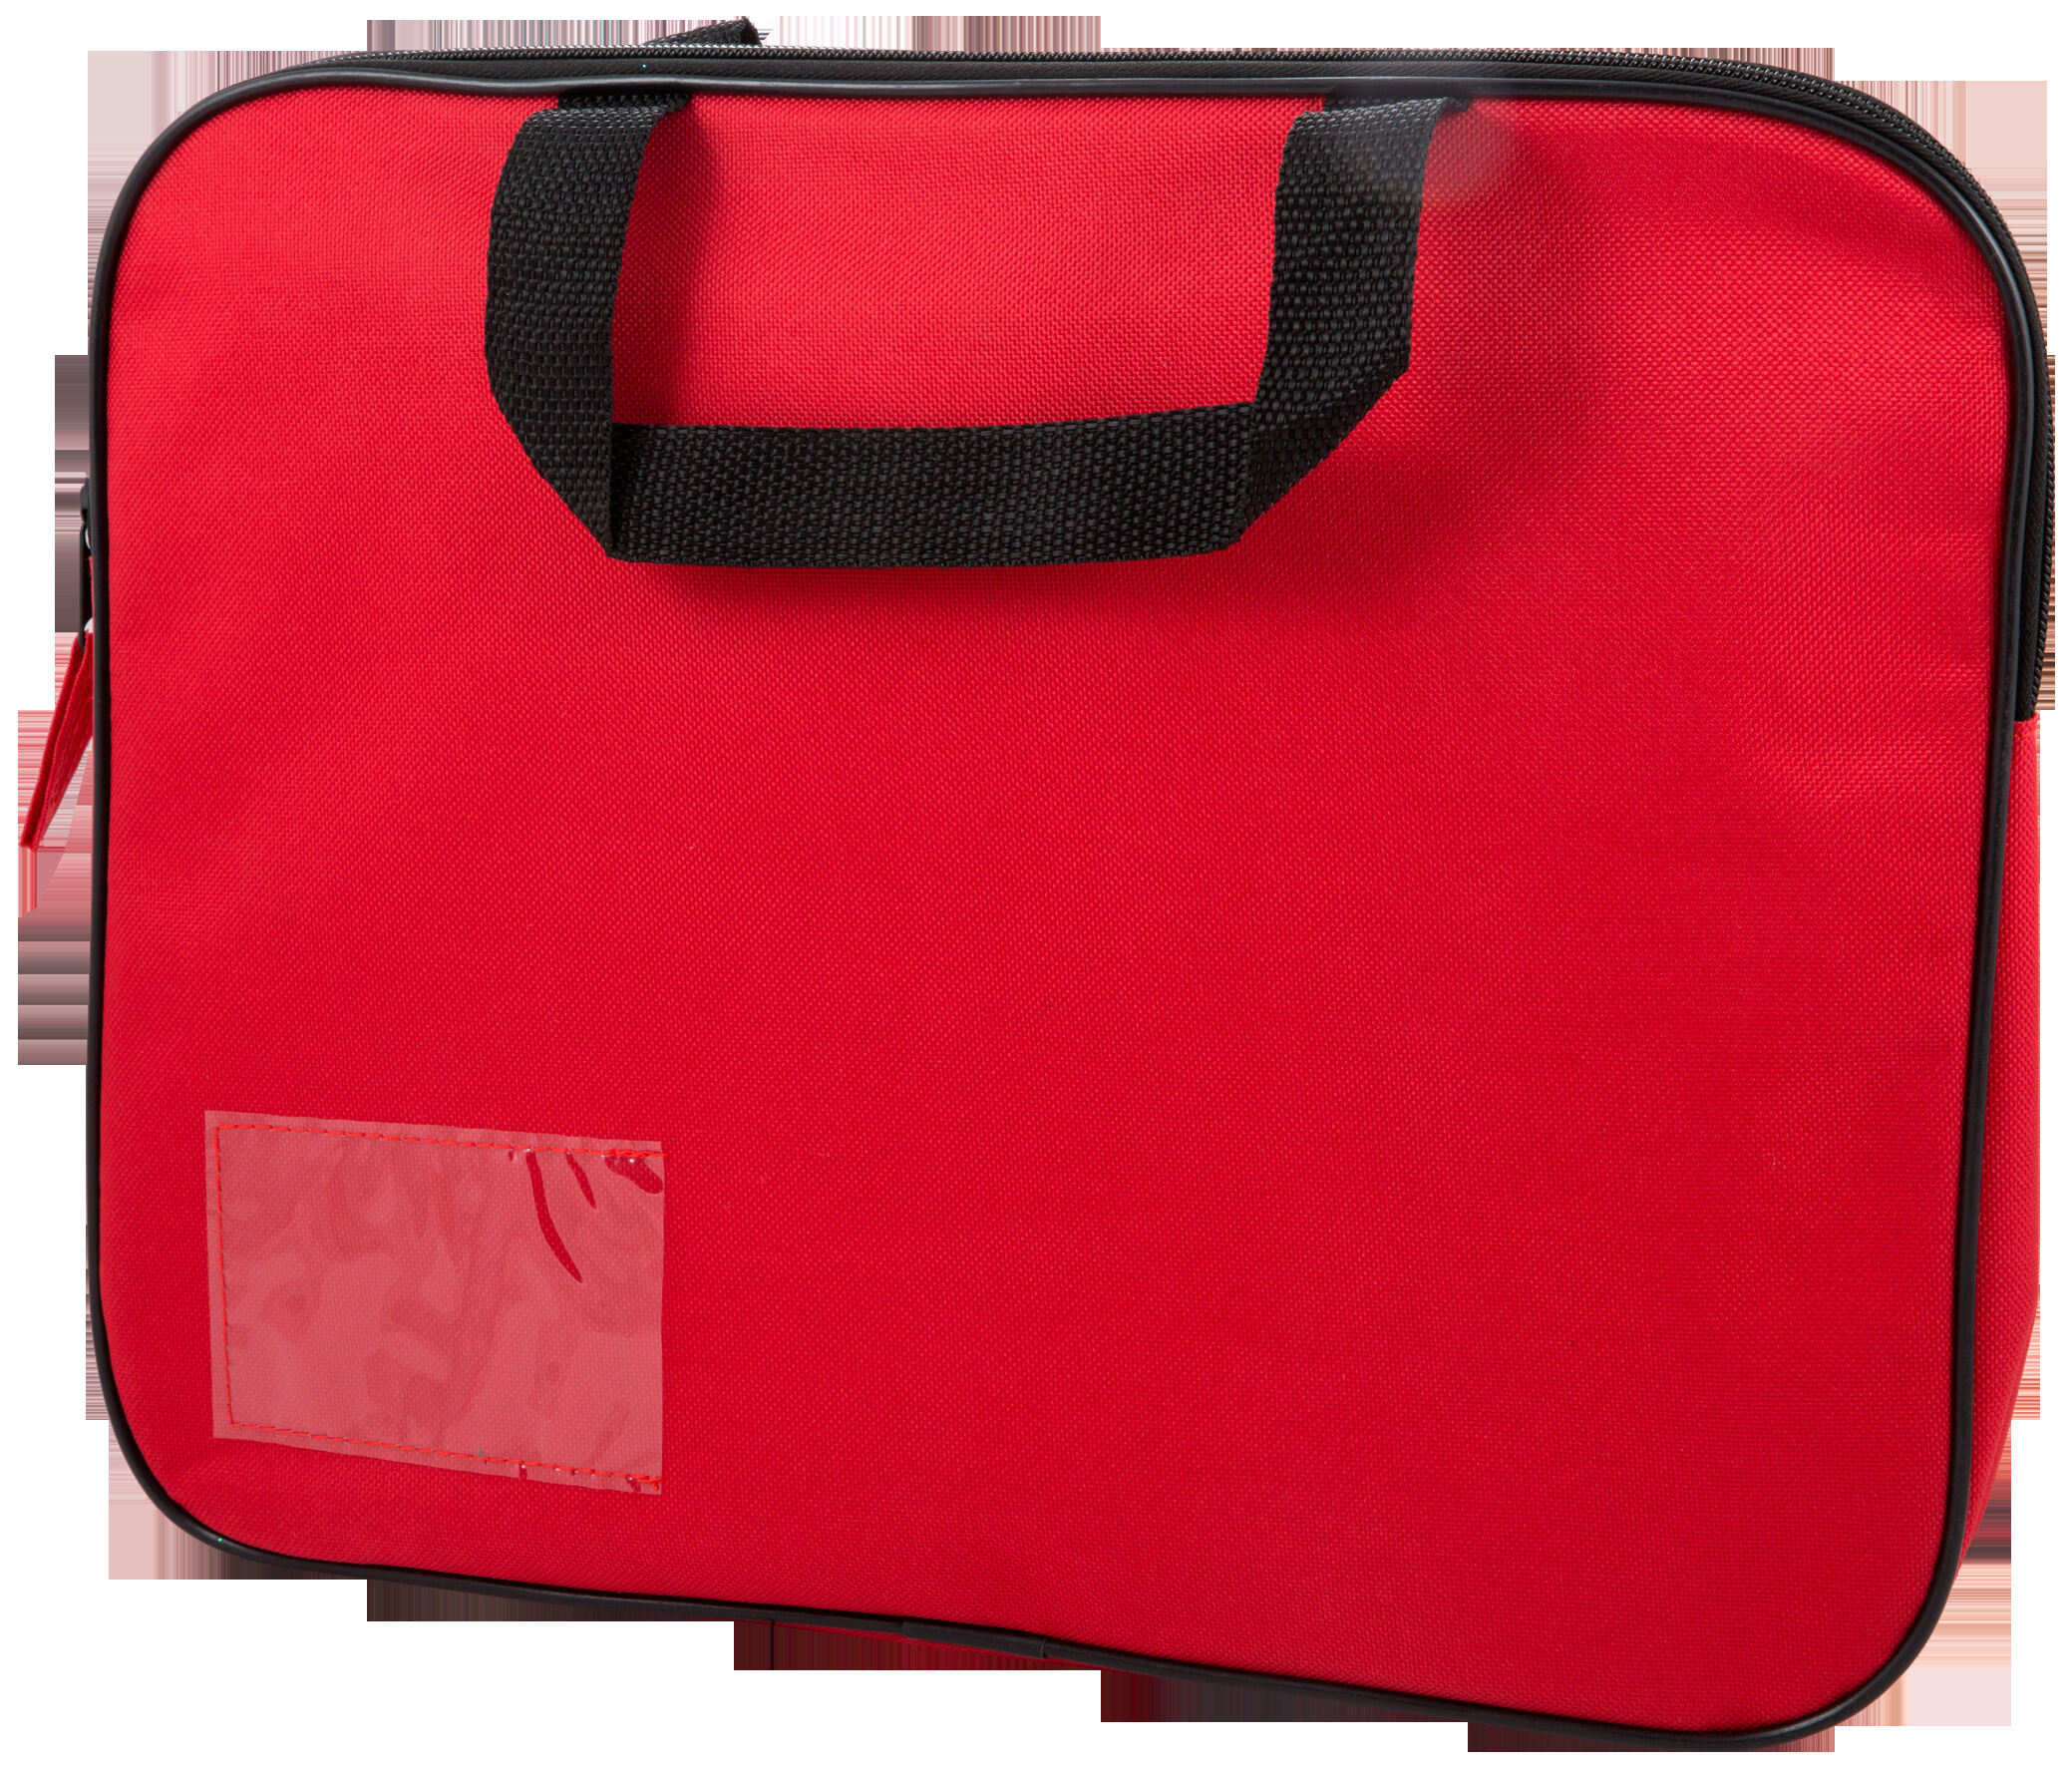 Homework Bag (Book Bag) With Handle - Red